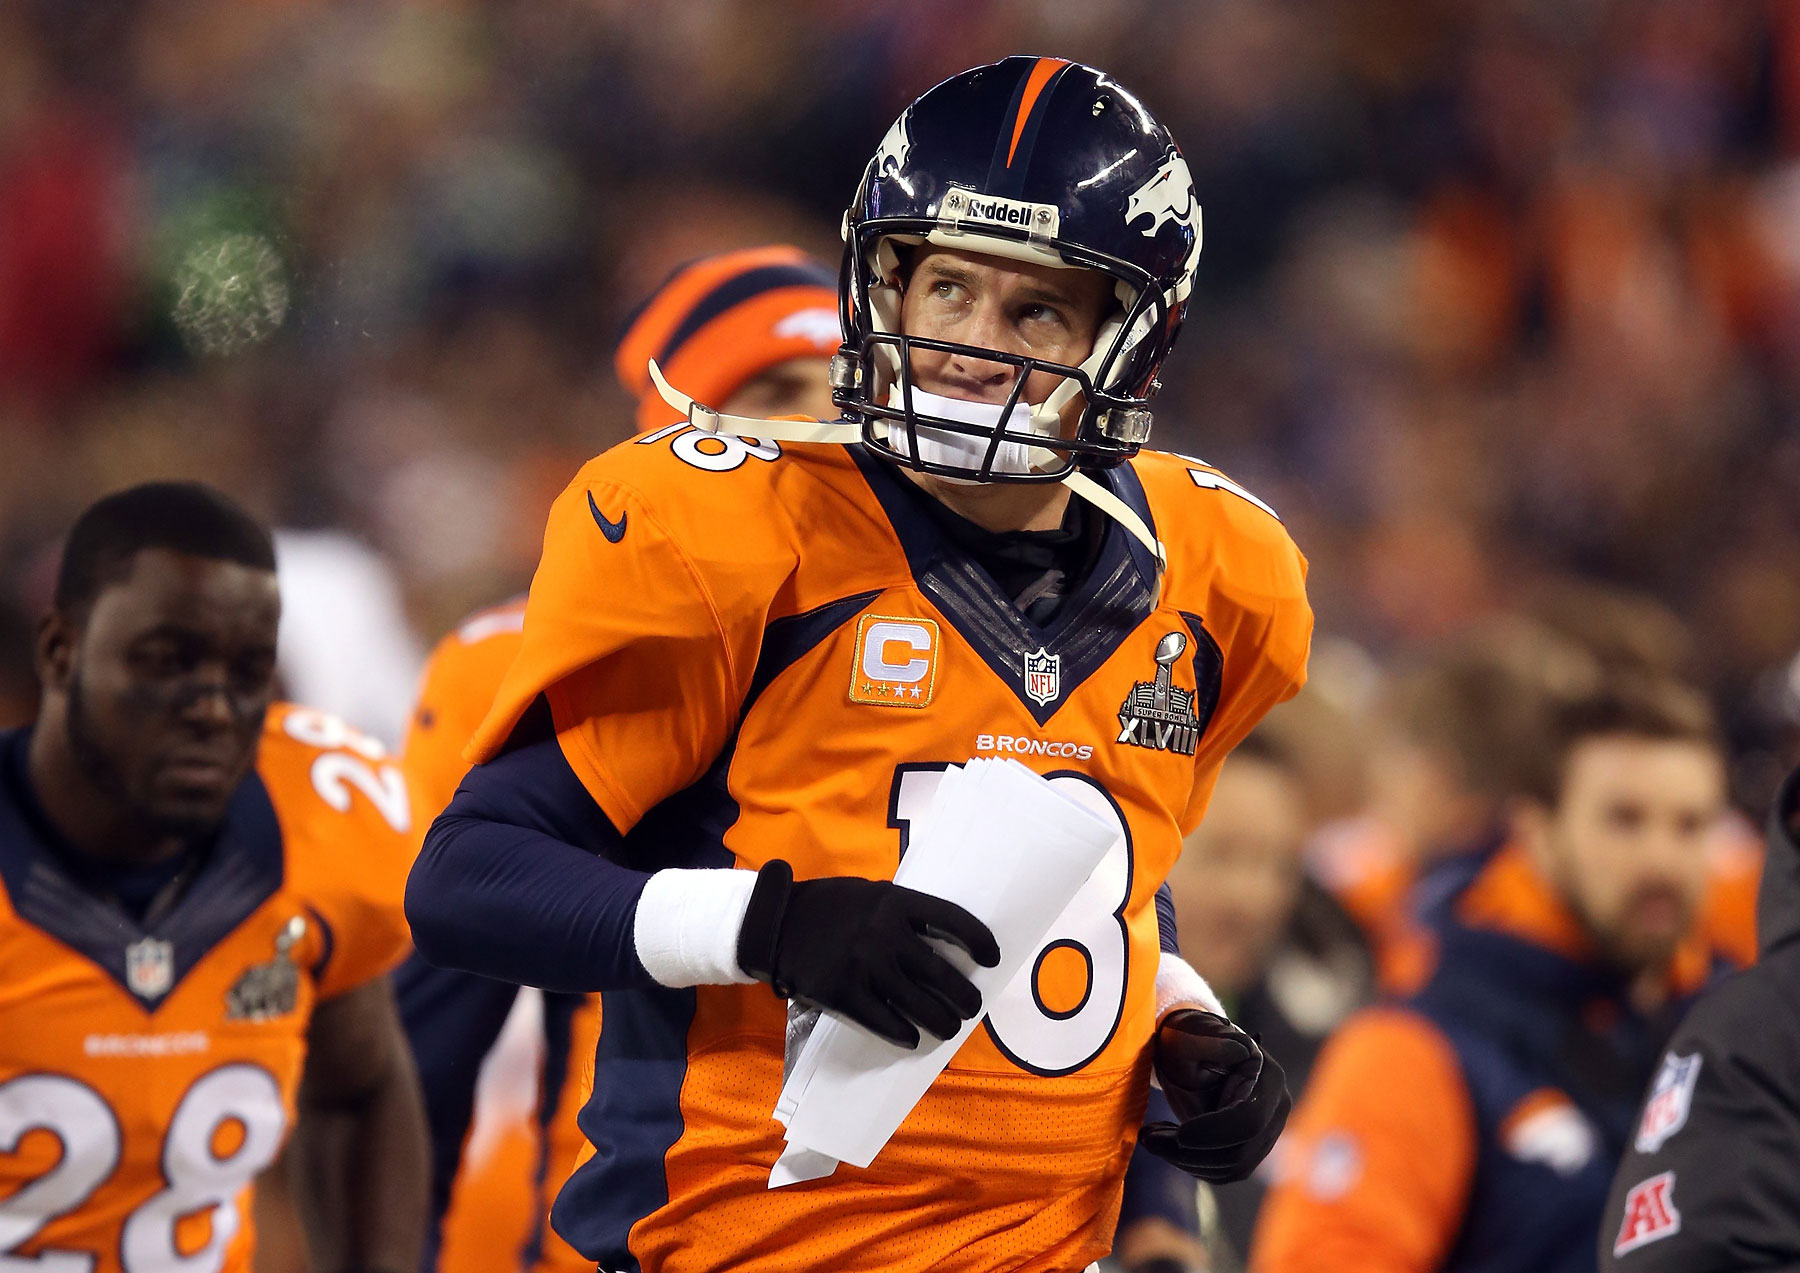 Quarterback Peyton Manning of the Denver Broncos runs off the field at the end of the first half.